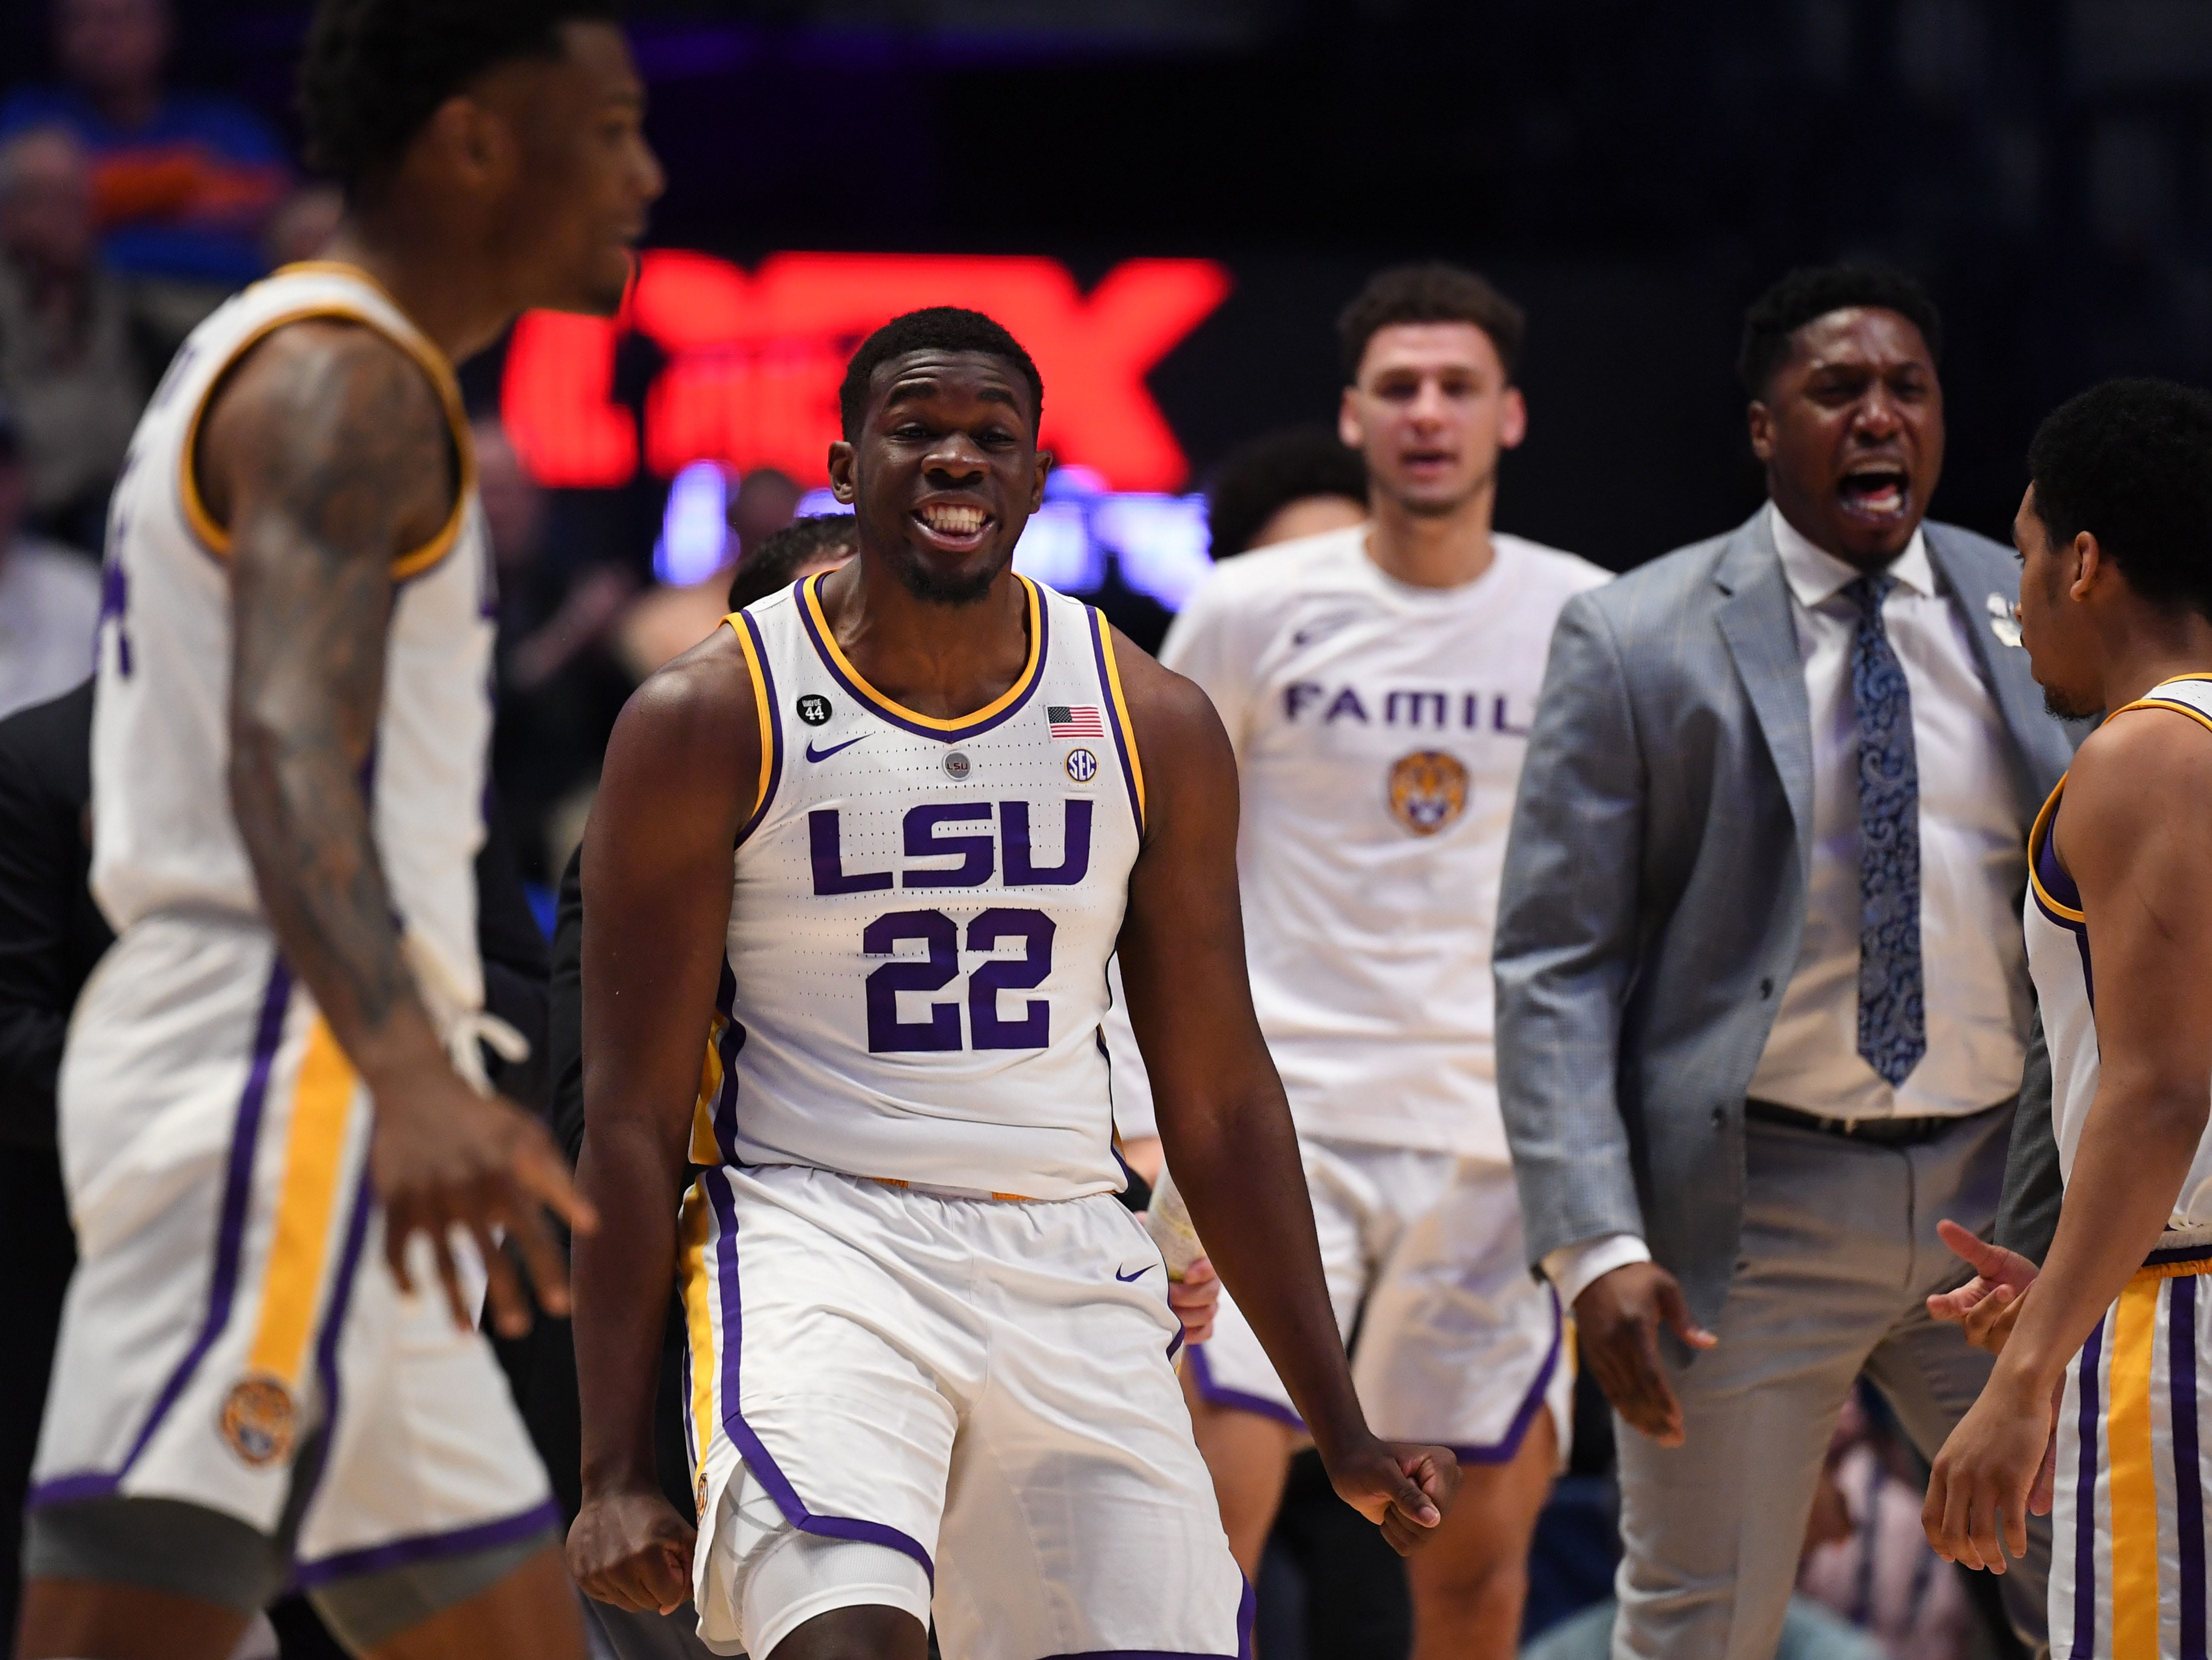 Mar 15, 2019; Nashville, TN, USA; LSU Tigers forward Darius Days (22) reacts against the Florida Gators during the first half of the SEC conference tournament at Bridgestone Arena. Mandatory Credit: Christopher Hanewinckel-USA TODAY Sports